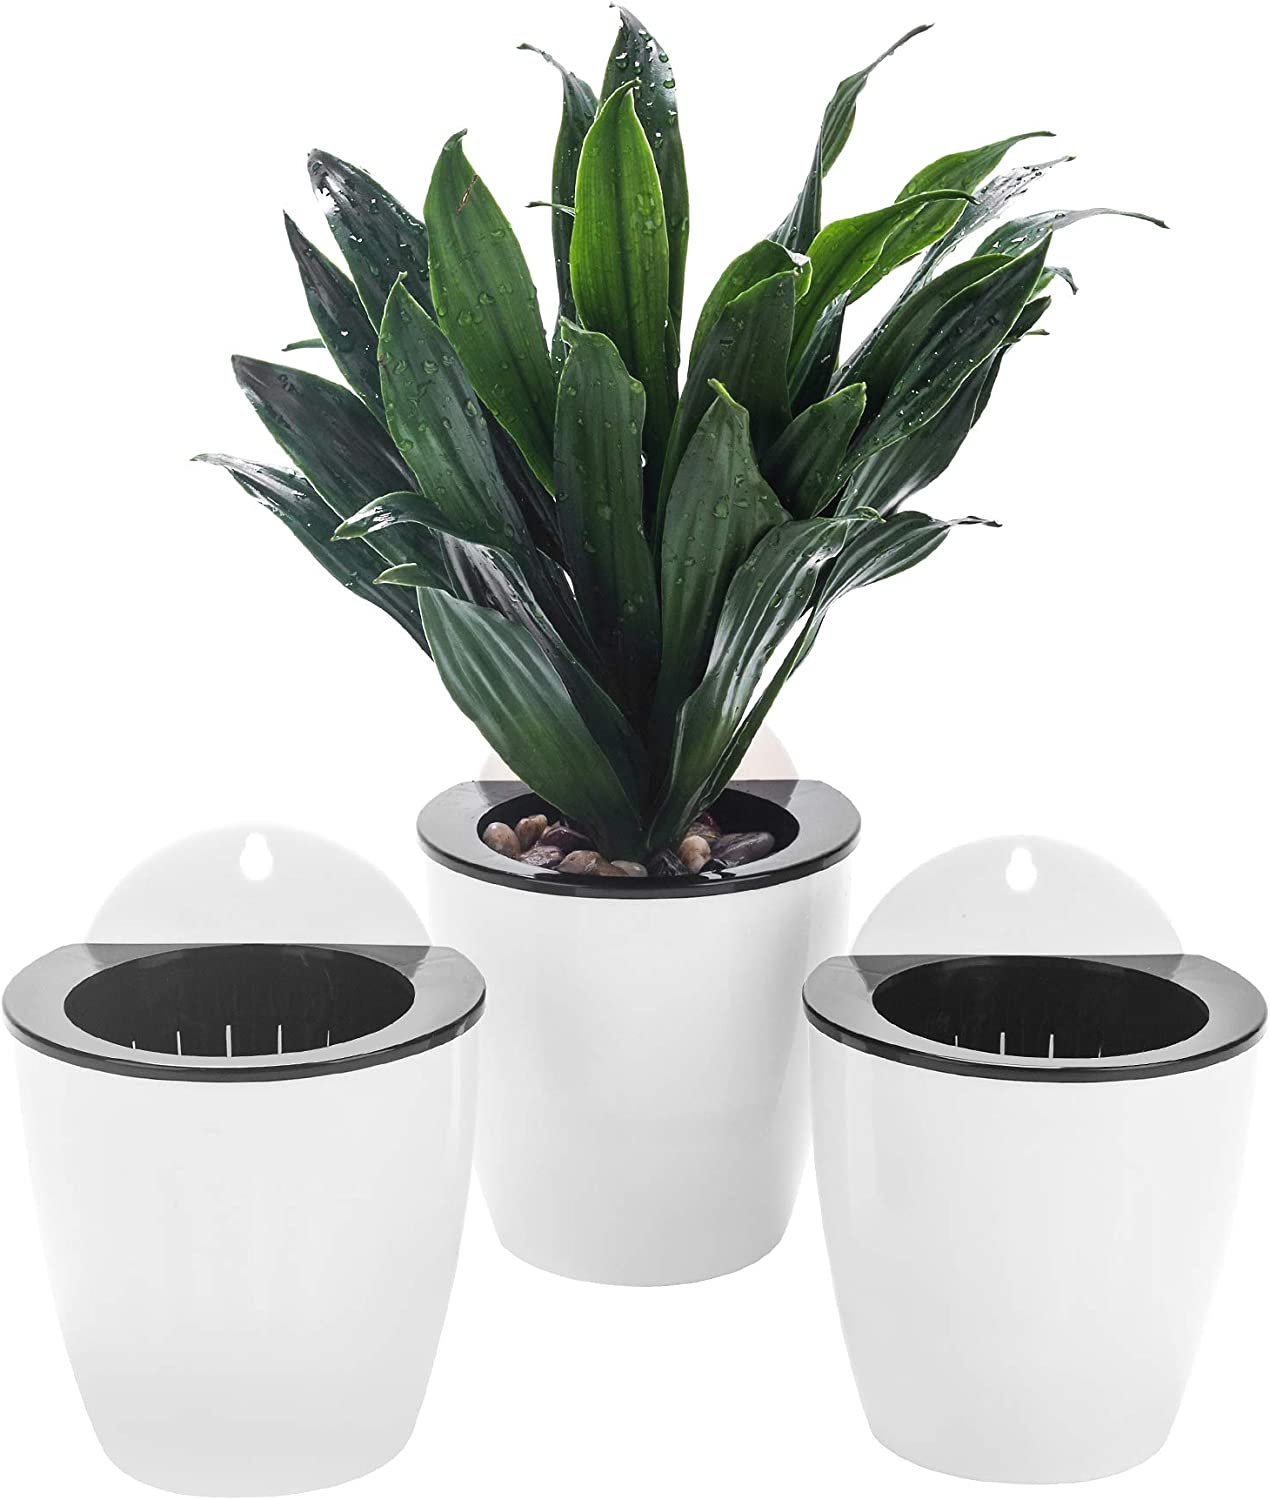 3 Pack Max 49% OFF Self Watering Wall Hanging W Garden Planter Tampa Mall Vertical Pots